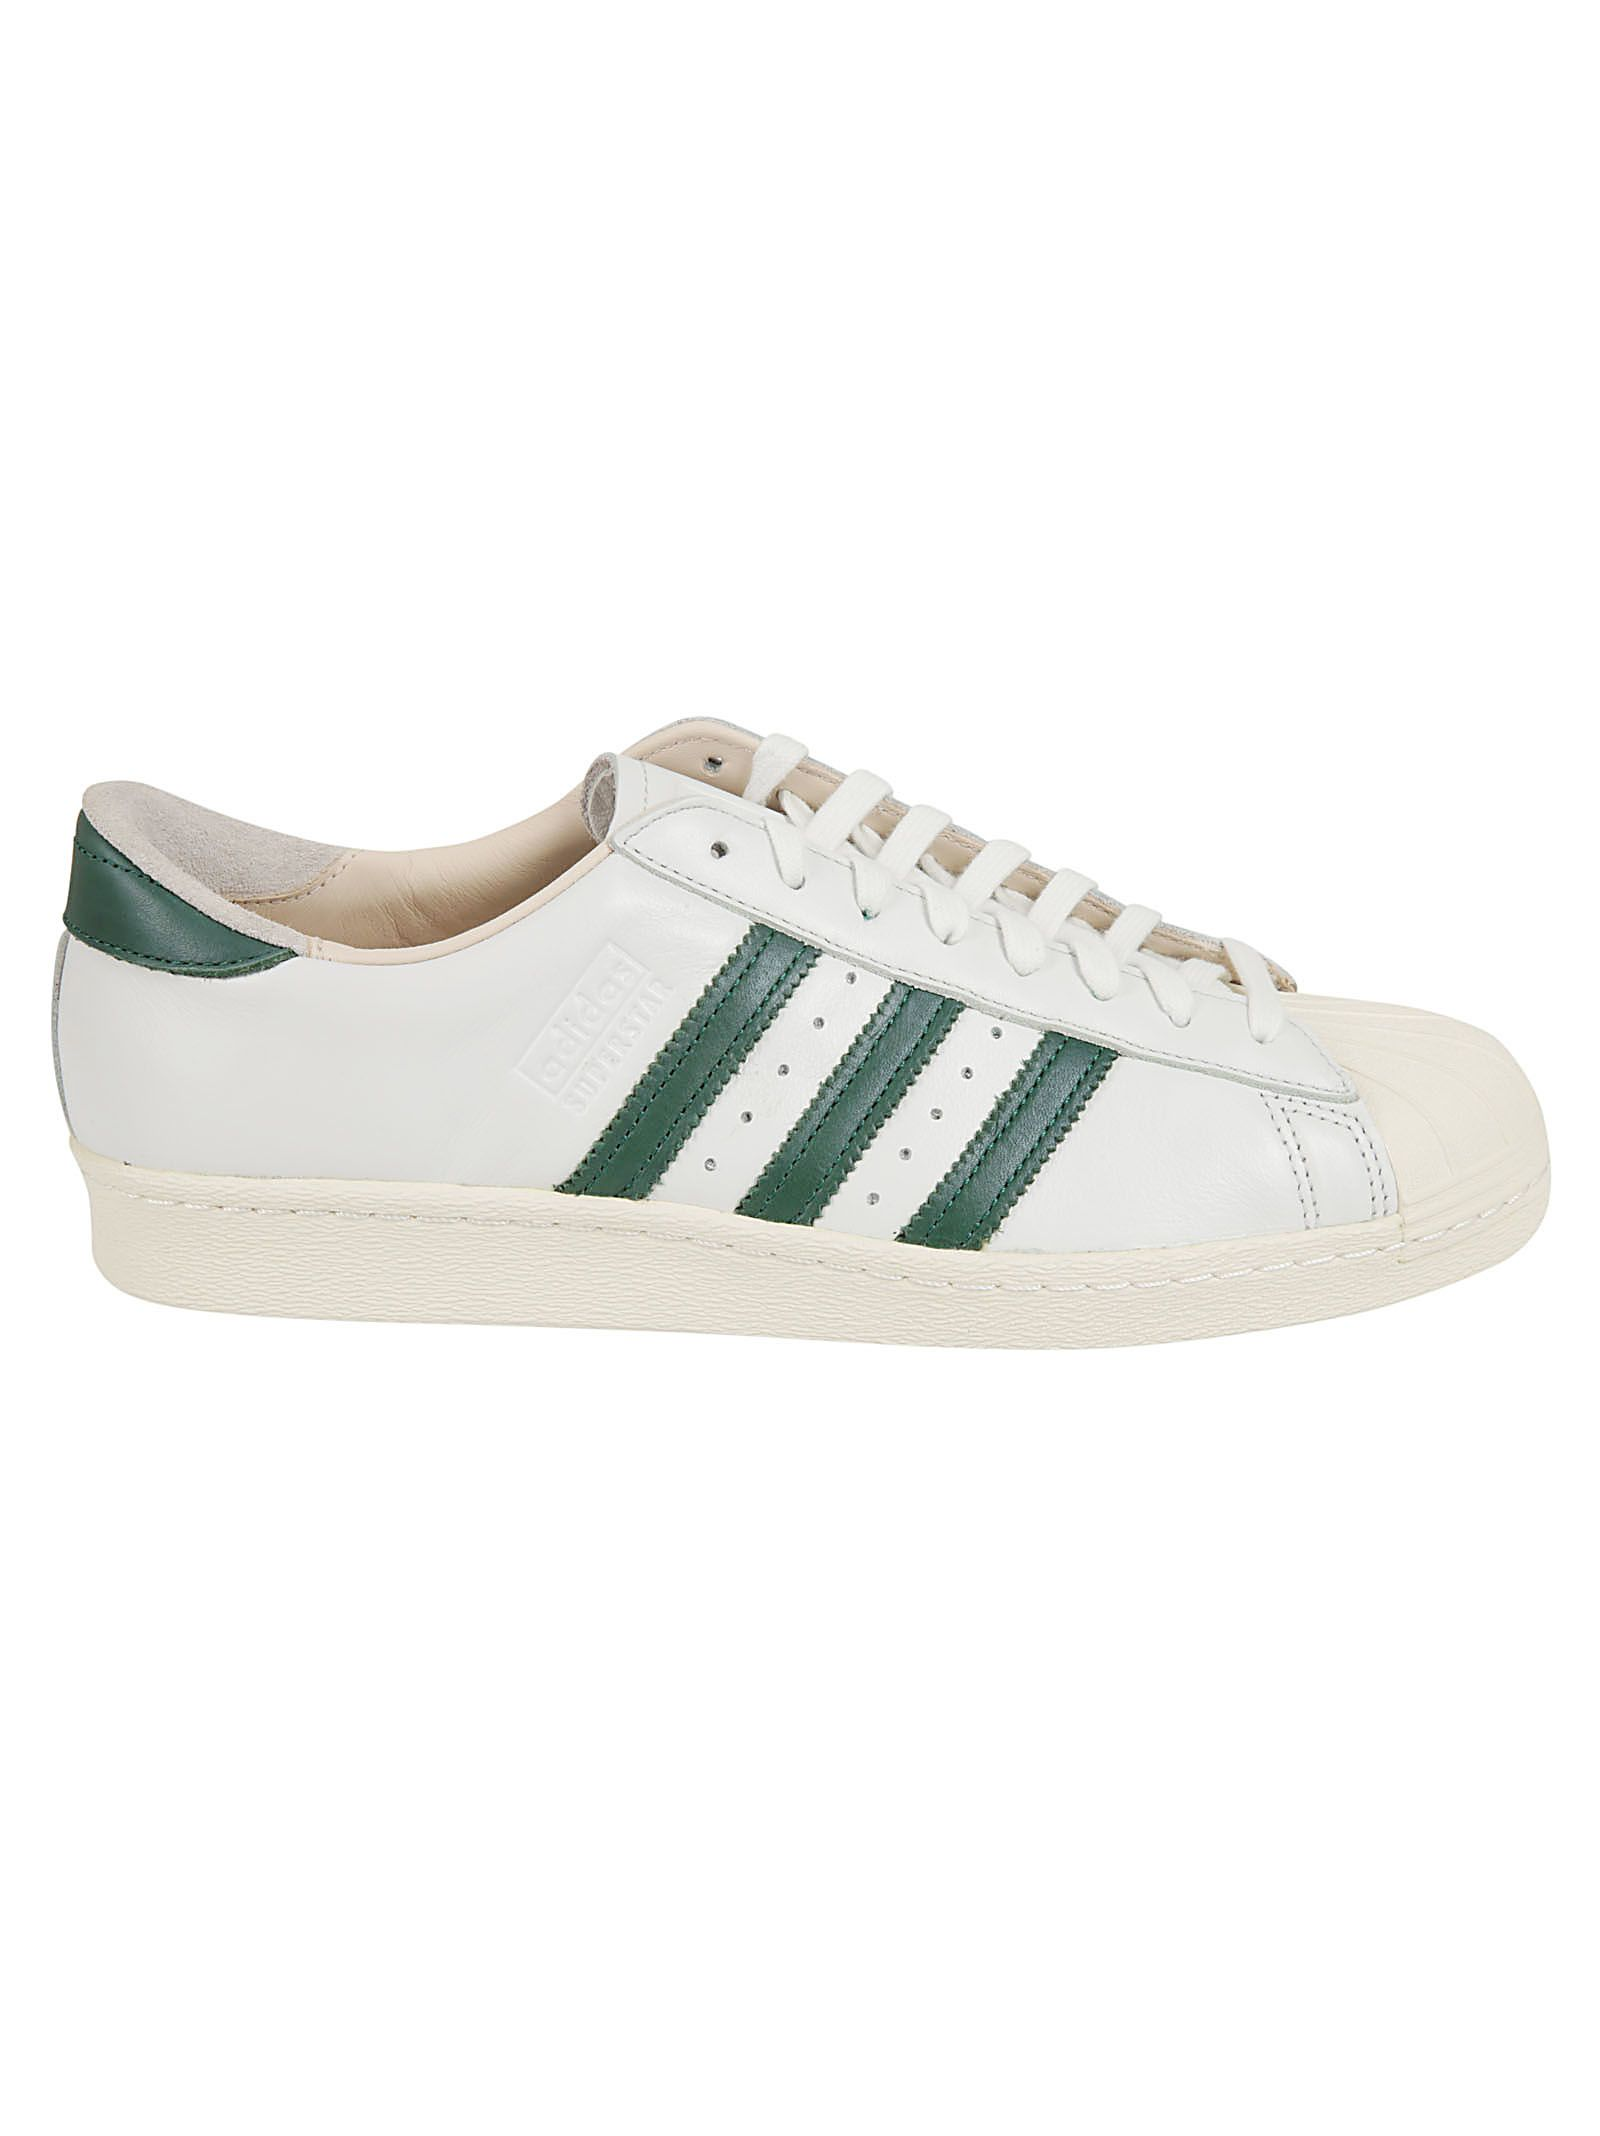 Adidas Originals Sneakers SUPERSTAR 80S RECON SNEAKERS